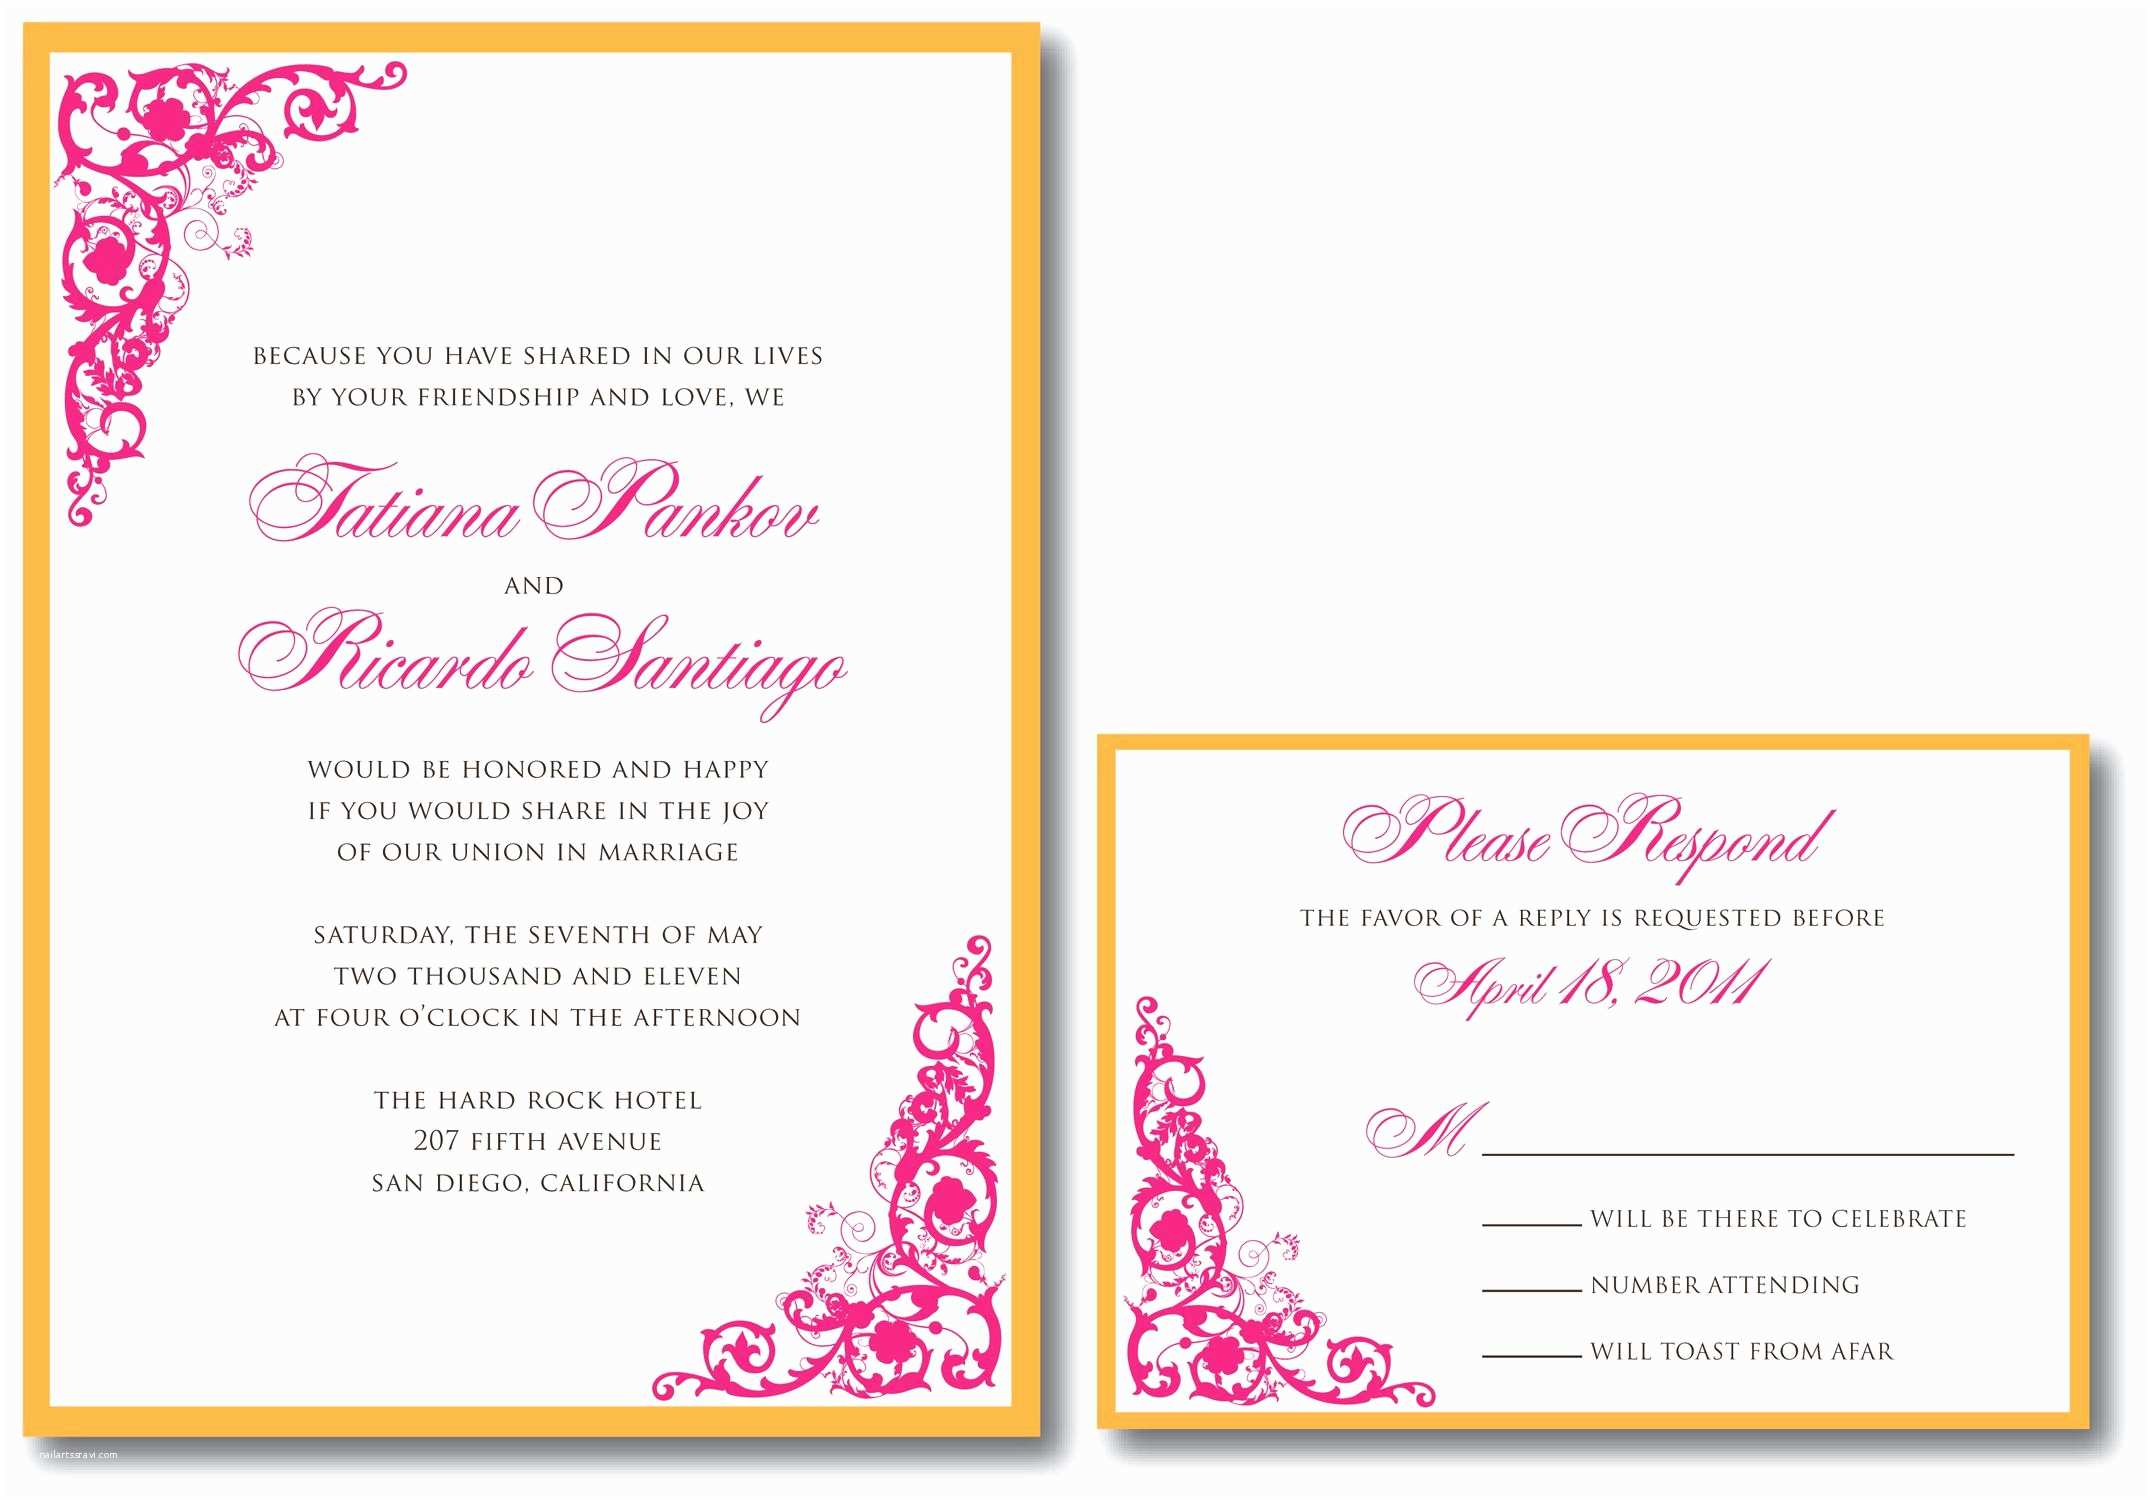 Response Card for Wedding Invitation Wording Dinner Invitation Template Dinner Invitation Template